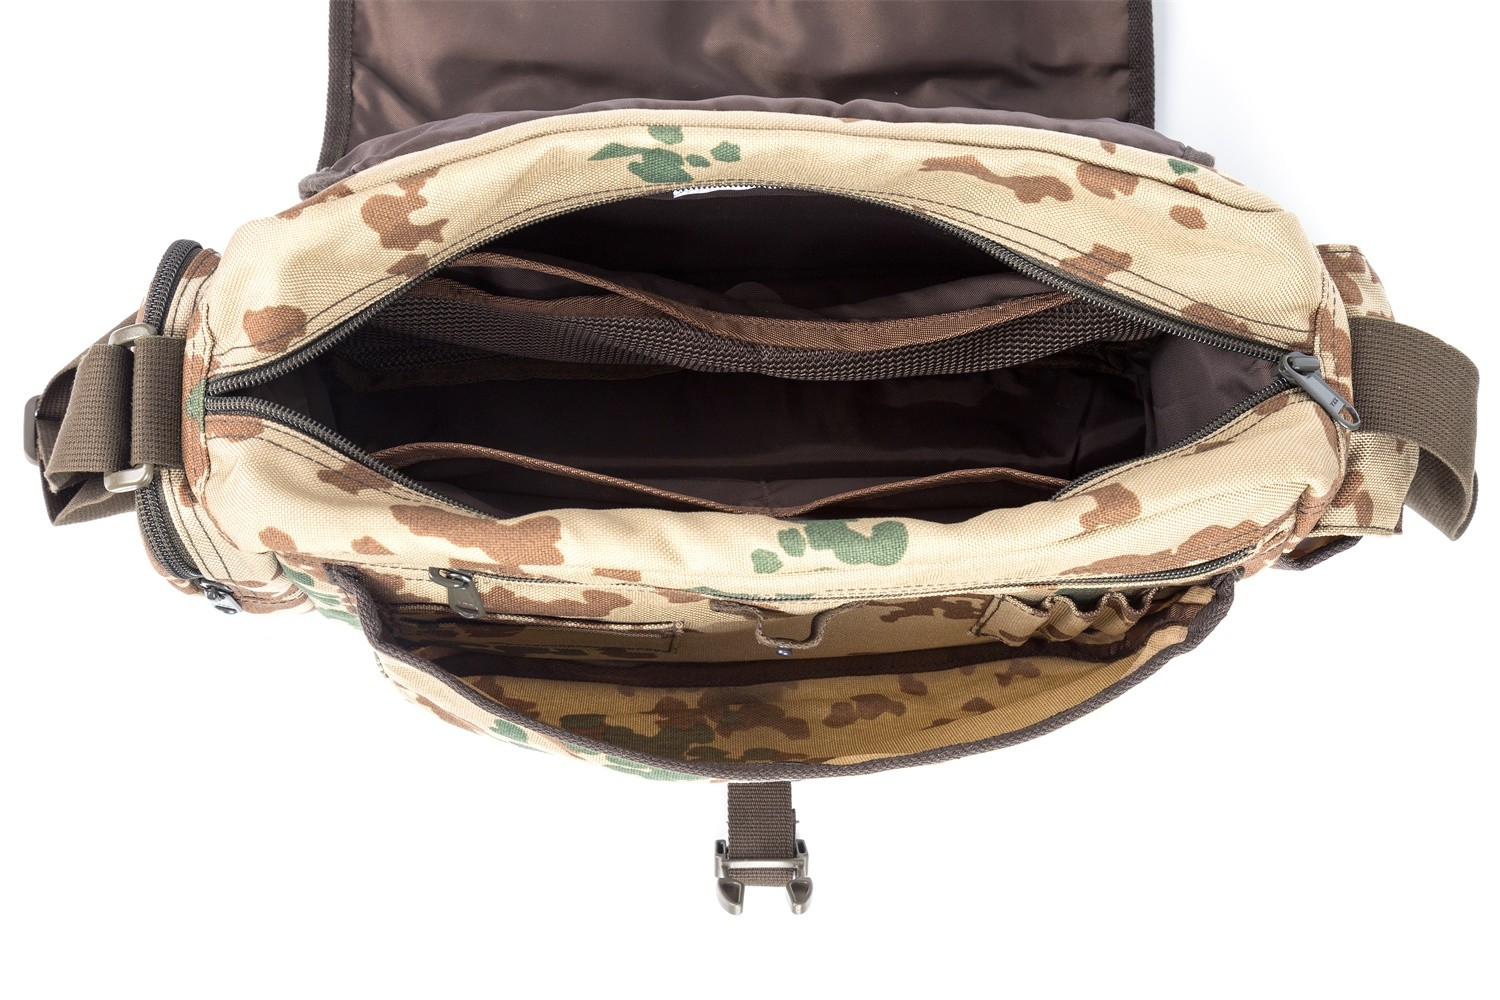 GF bags-Find Military Gear Bags Military Messenger Bag From GF Bags-7